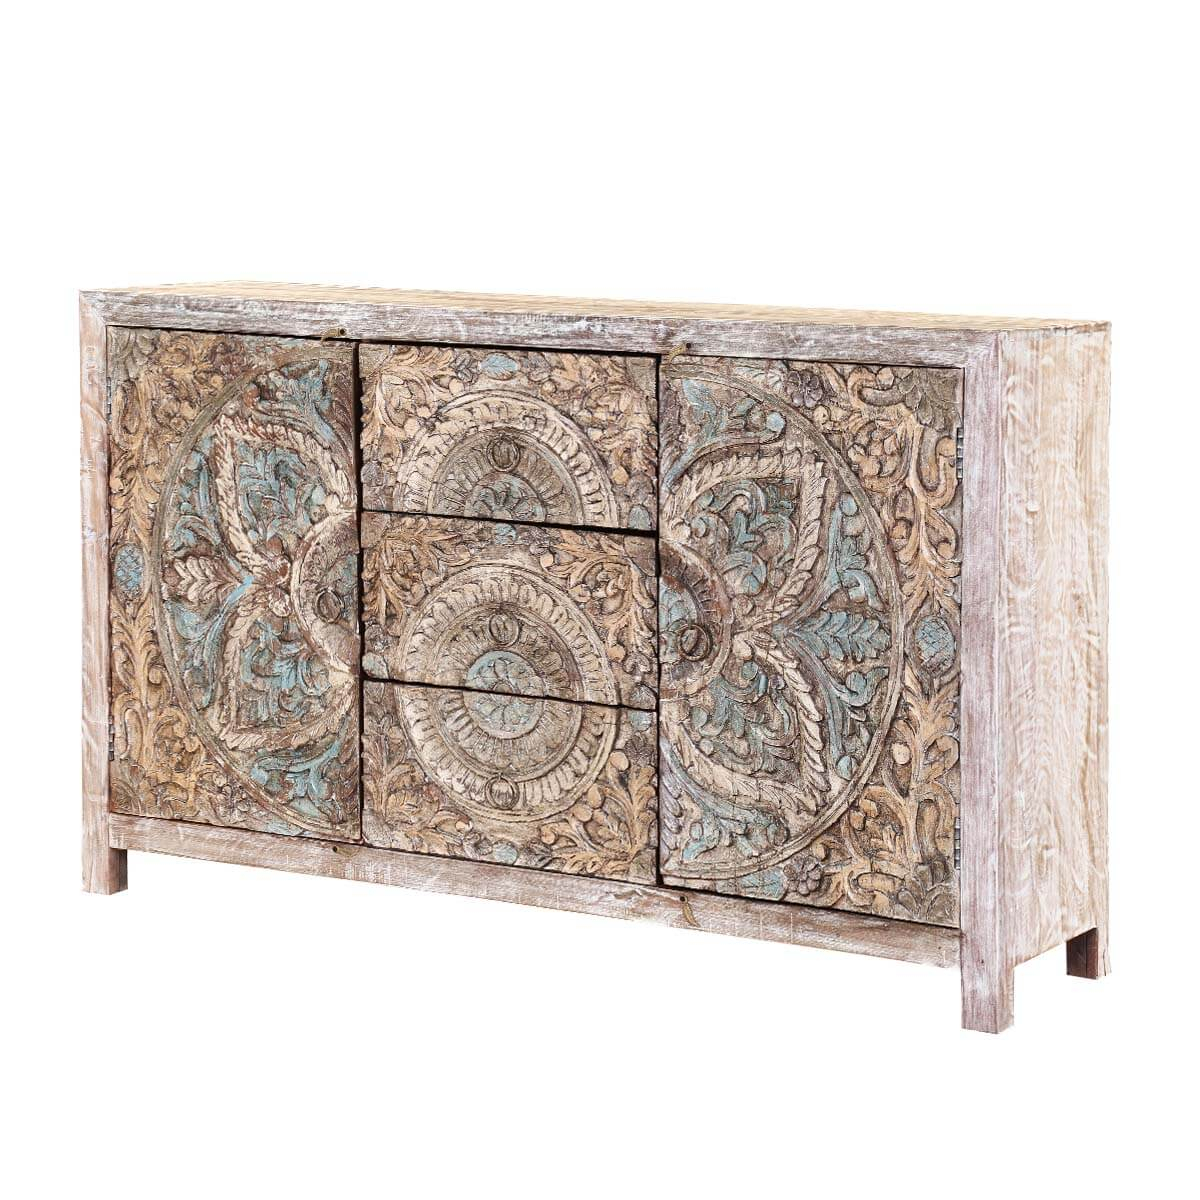 Avenal Floral Mandalas Solid Wood Hand Carved Accent Buffet Cabinet throughout Avenal Sideboards (Image 6 of 30)